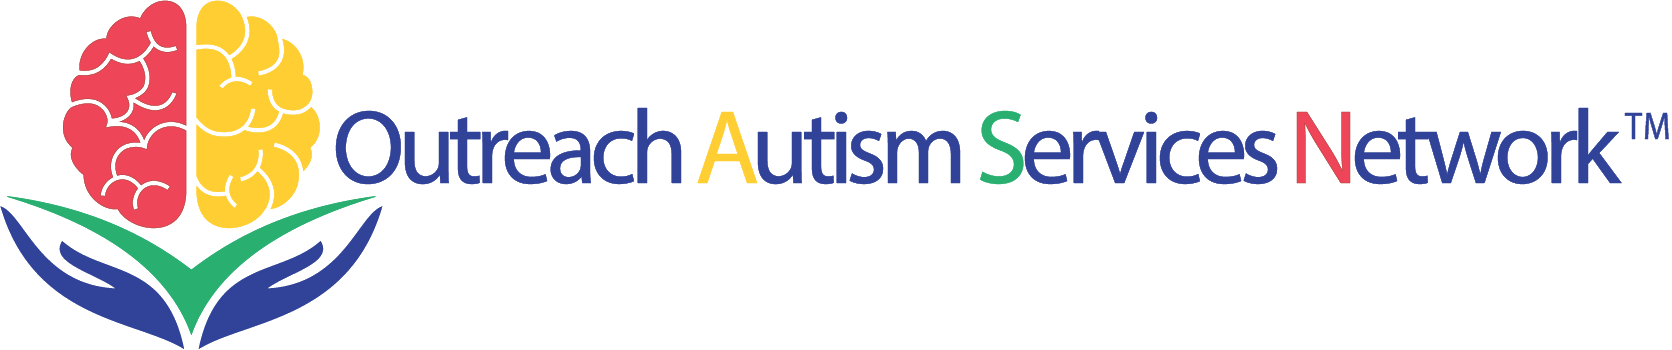 Outreach autism Services Network